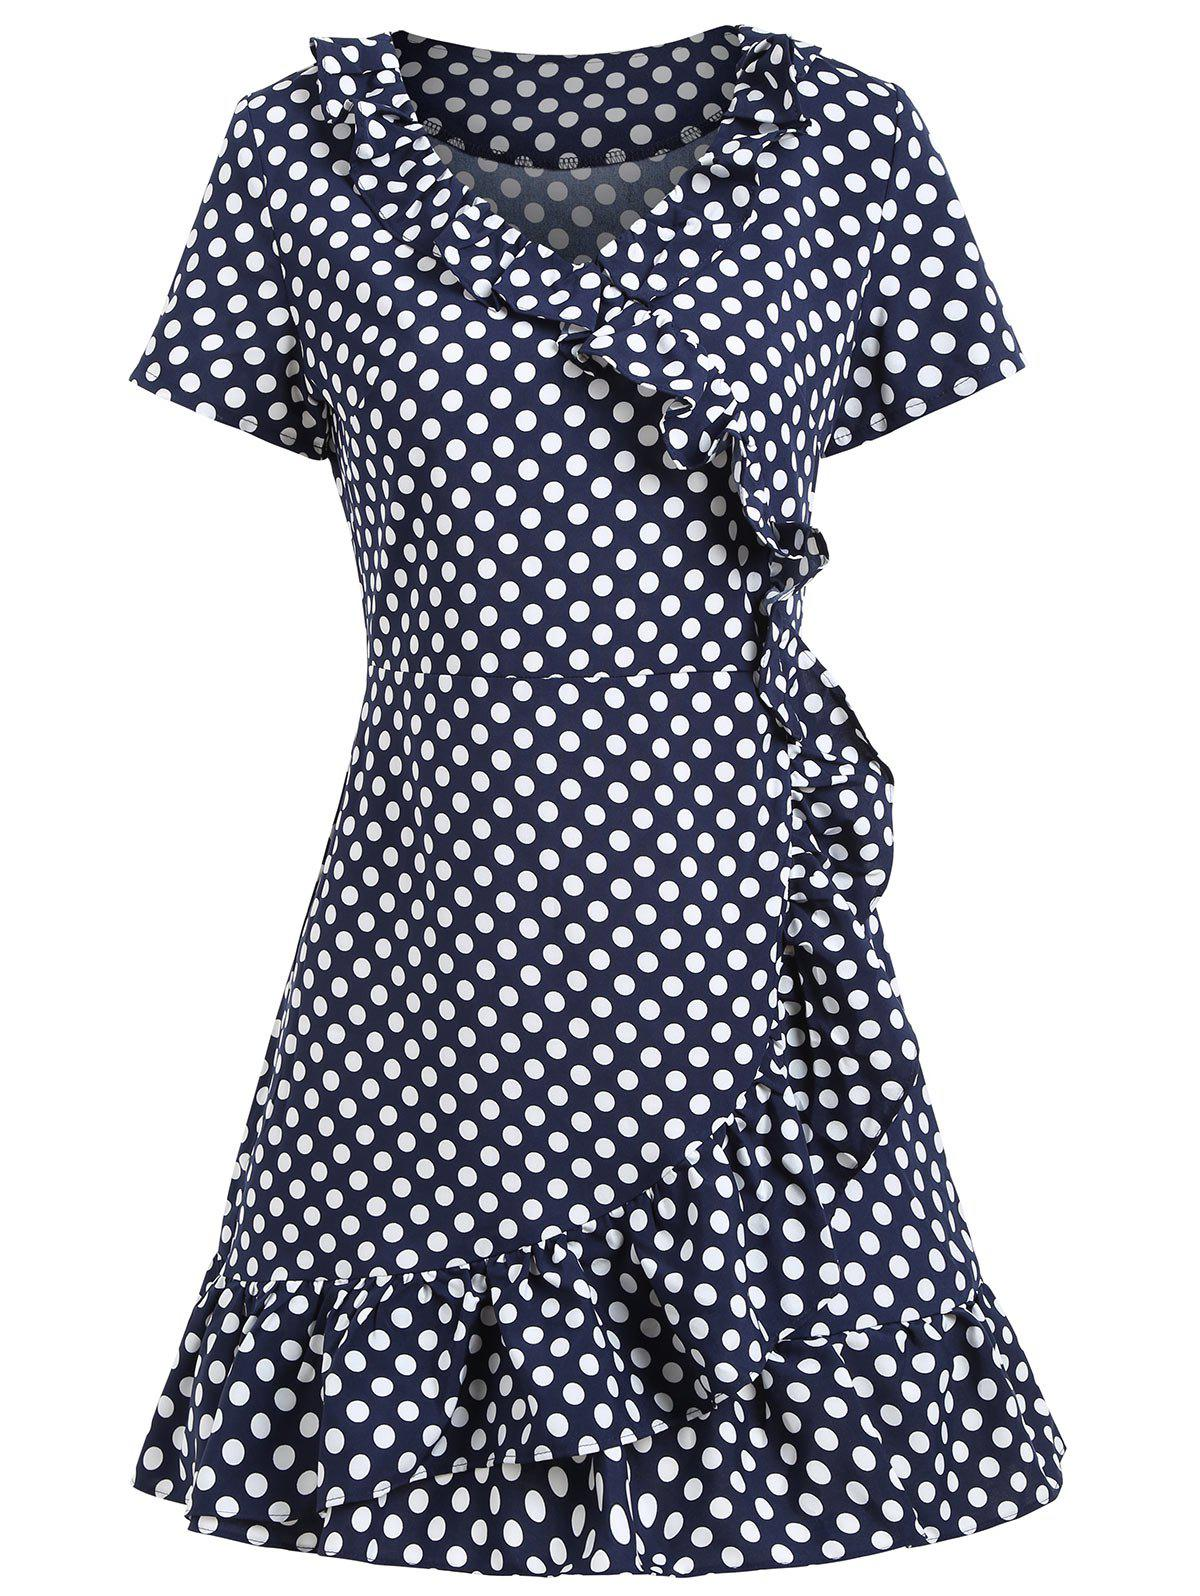 Polka Dot Ruffles Mini Dress - Bleu et Blanc S